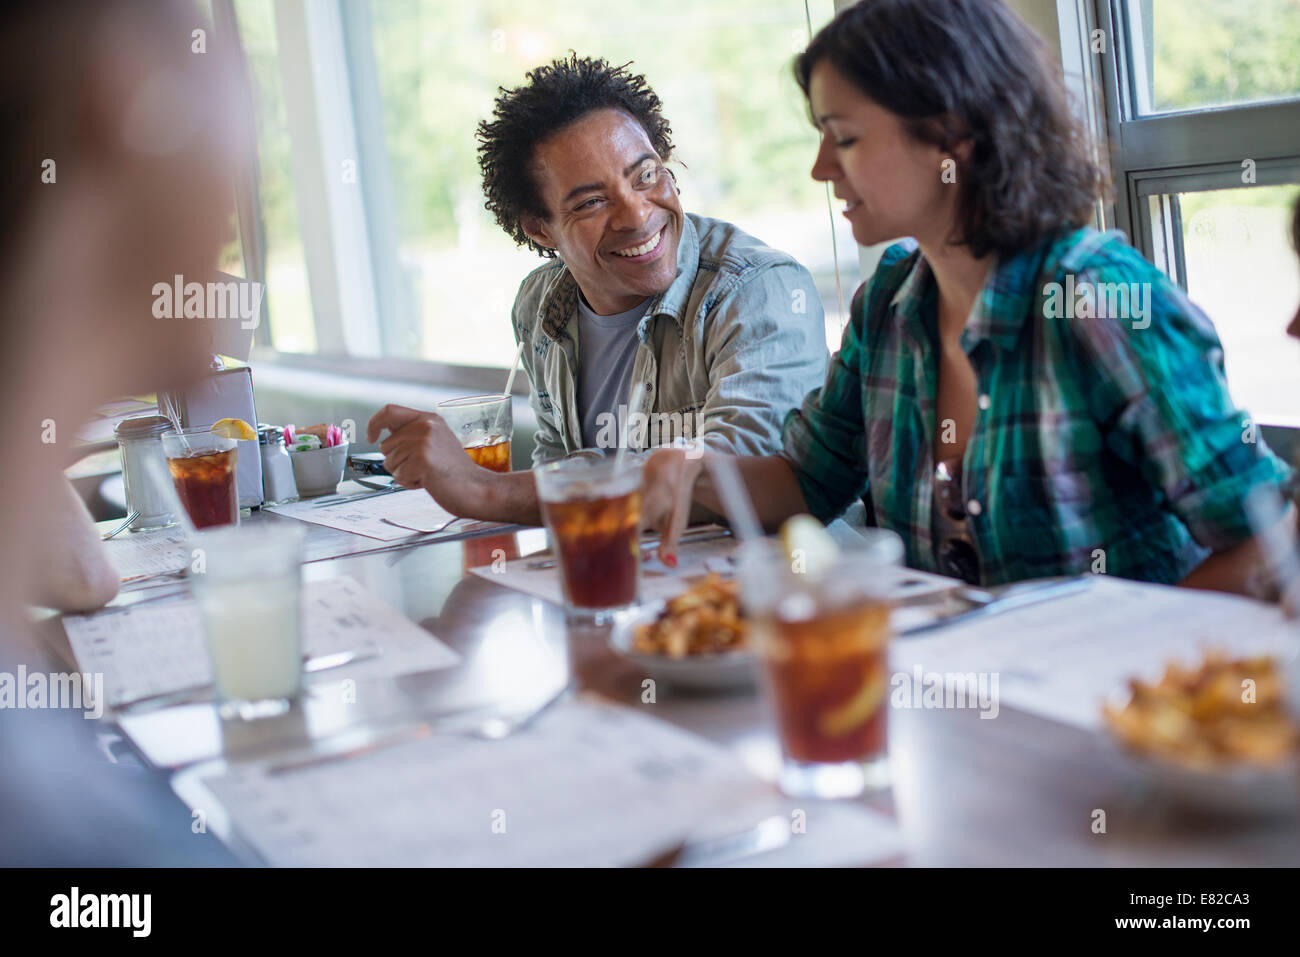 A group of friends eating at a diner. A couple seated side by side. - Stock Image